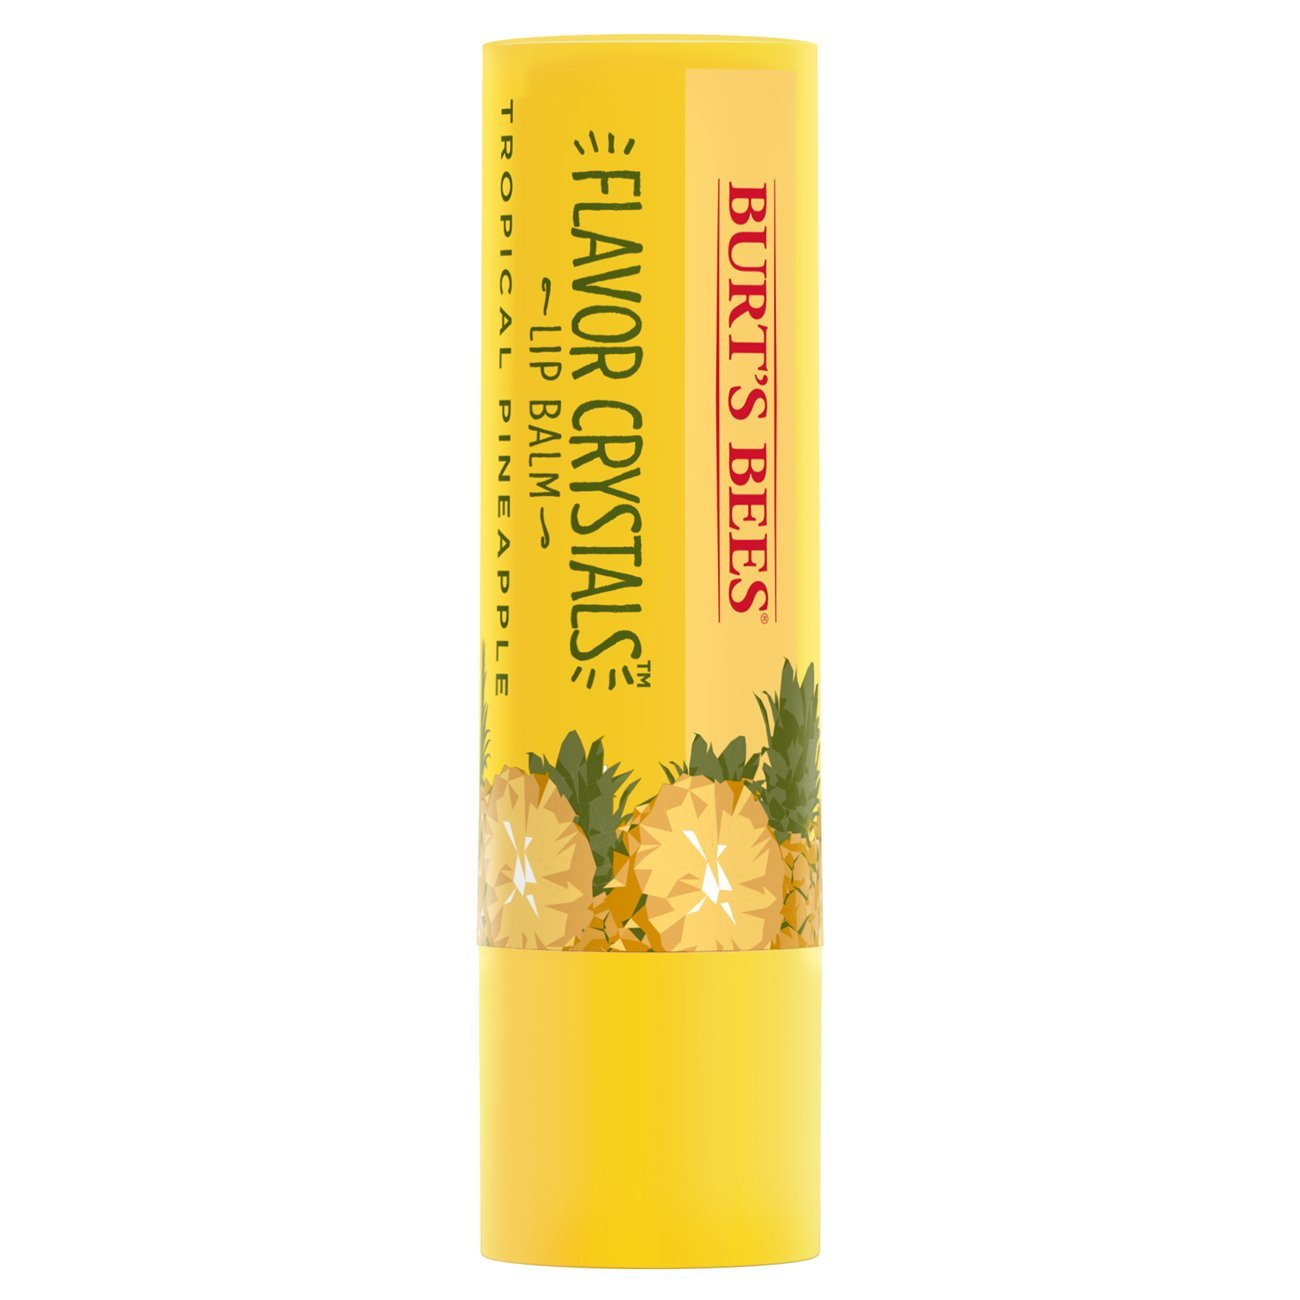 Burt's Bees Flavour Crystals 100 Percent Natural moisturising Lip Balm, 4.53 g, Tropical Pineapple Cbee Europe Ltd 89715-14